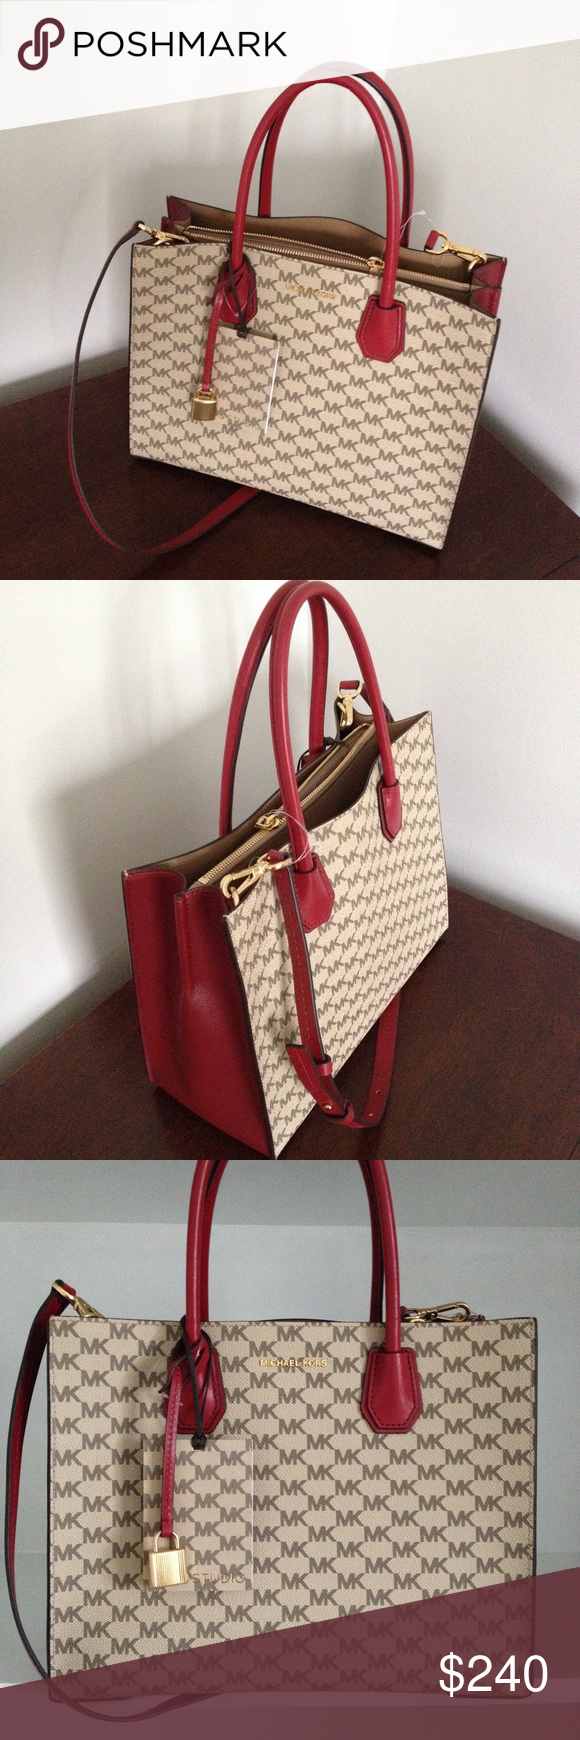 f955ddd0c6 Michael Kors Studio Mercer Signature LG Conv Tote MK Studio Mercer  Signature Large Convertible Tote featured